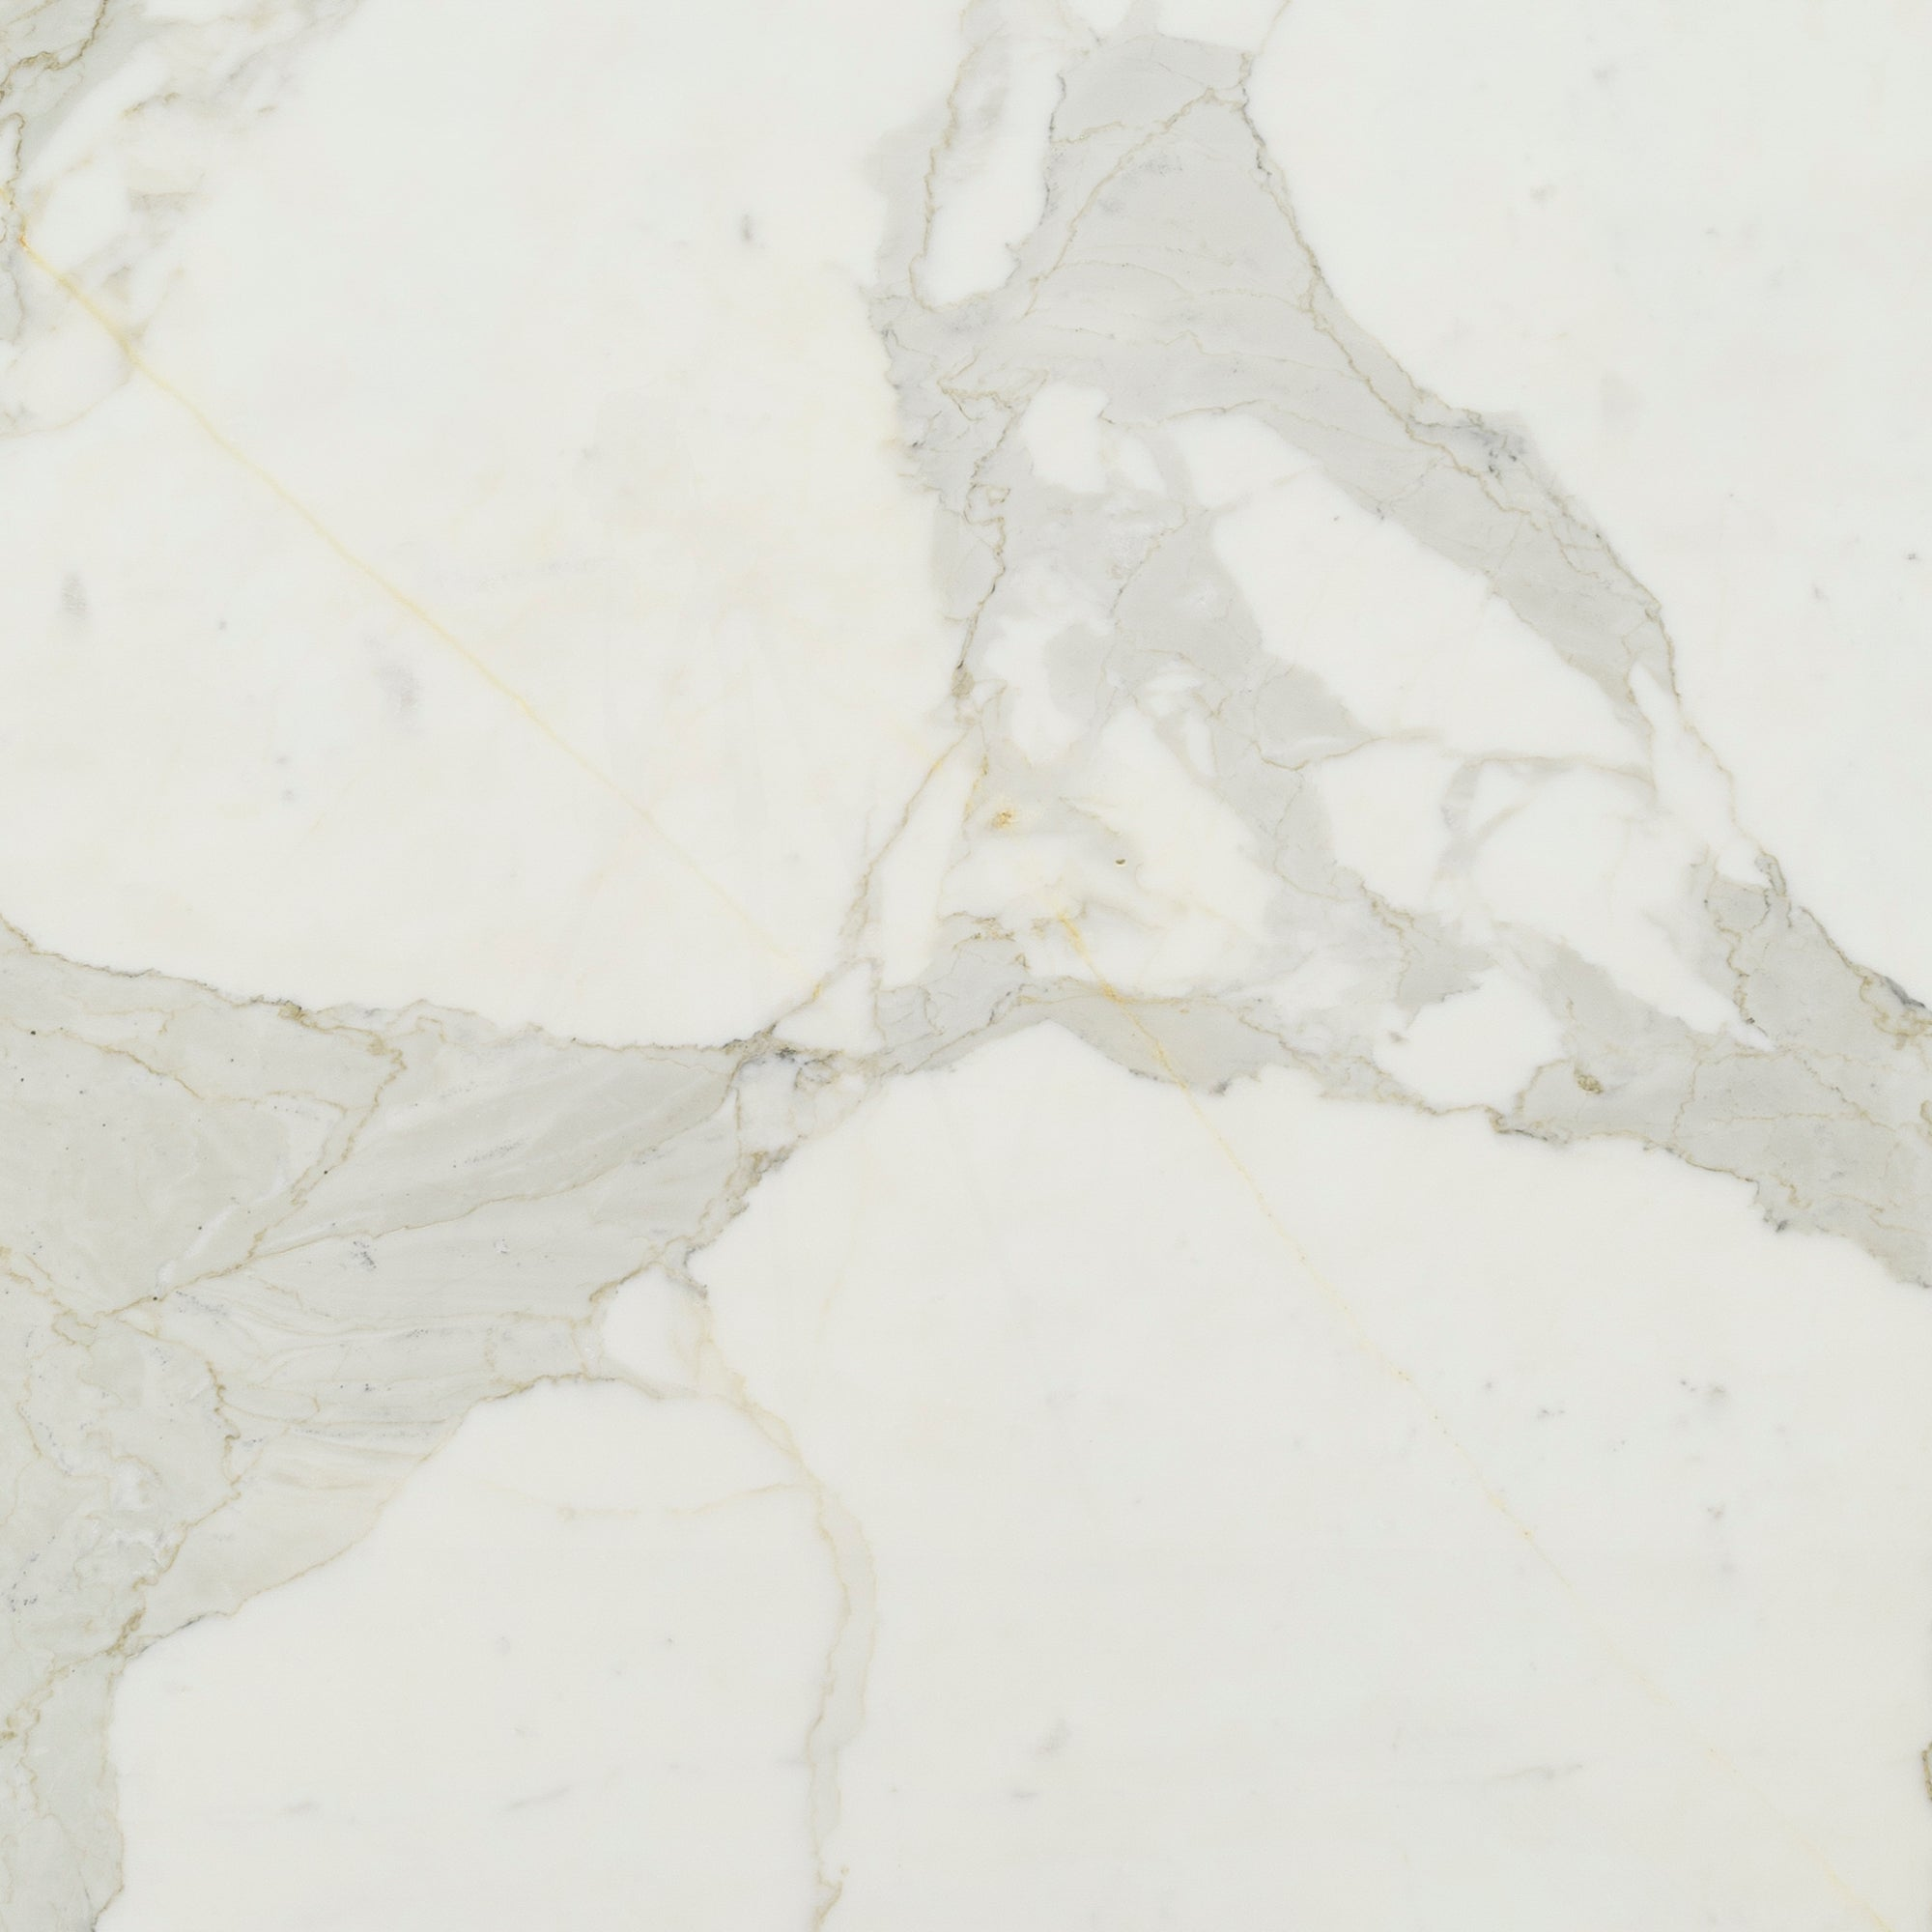 2cm Calacatta Gold A2 Standard Marble Swatch Card  Polished Samples Slab product photo